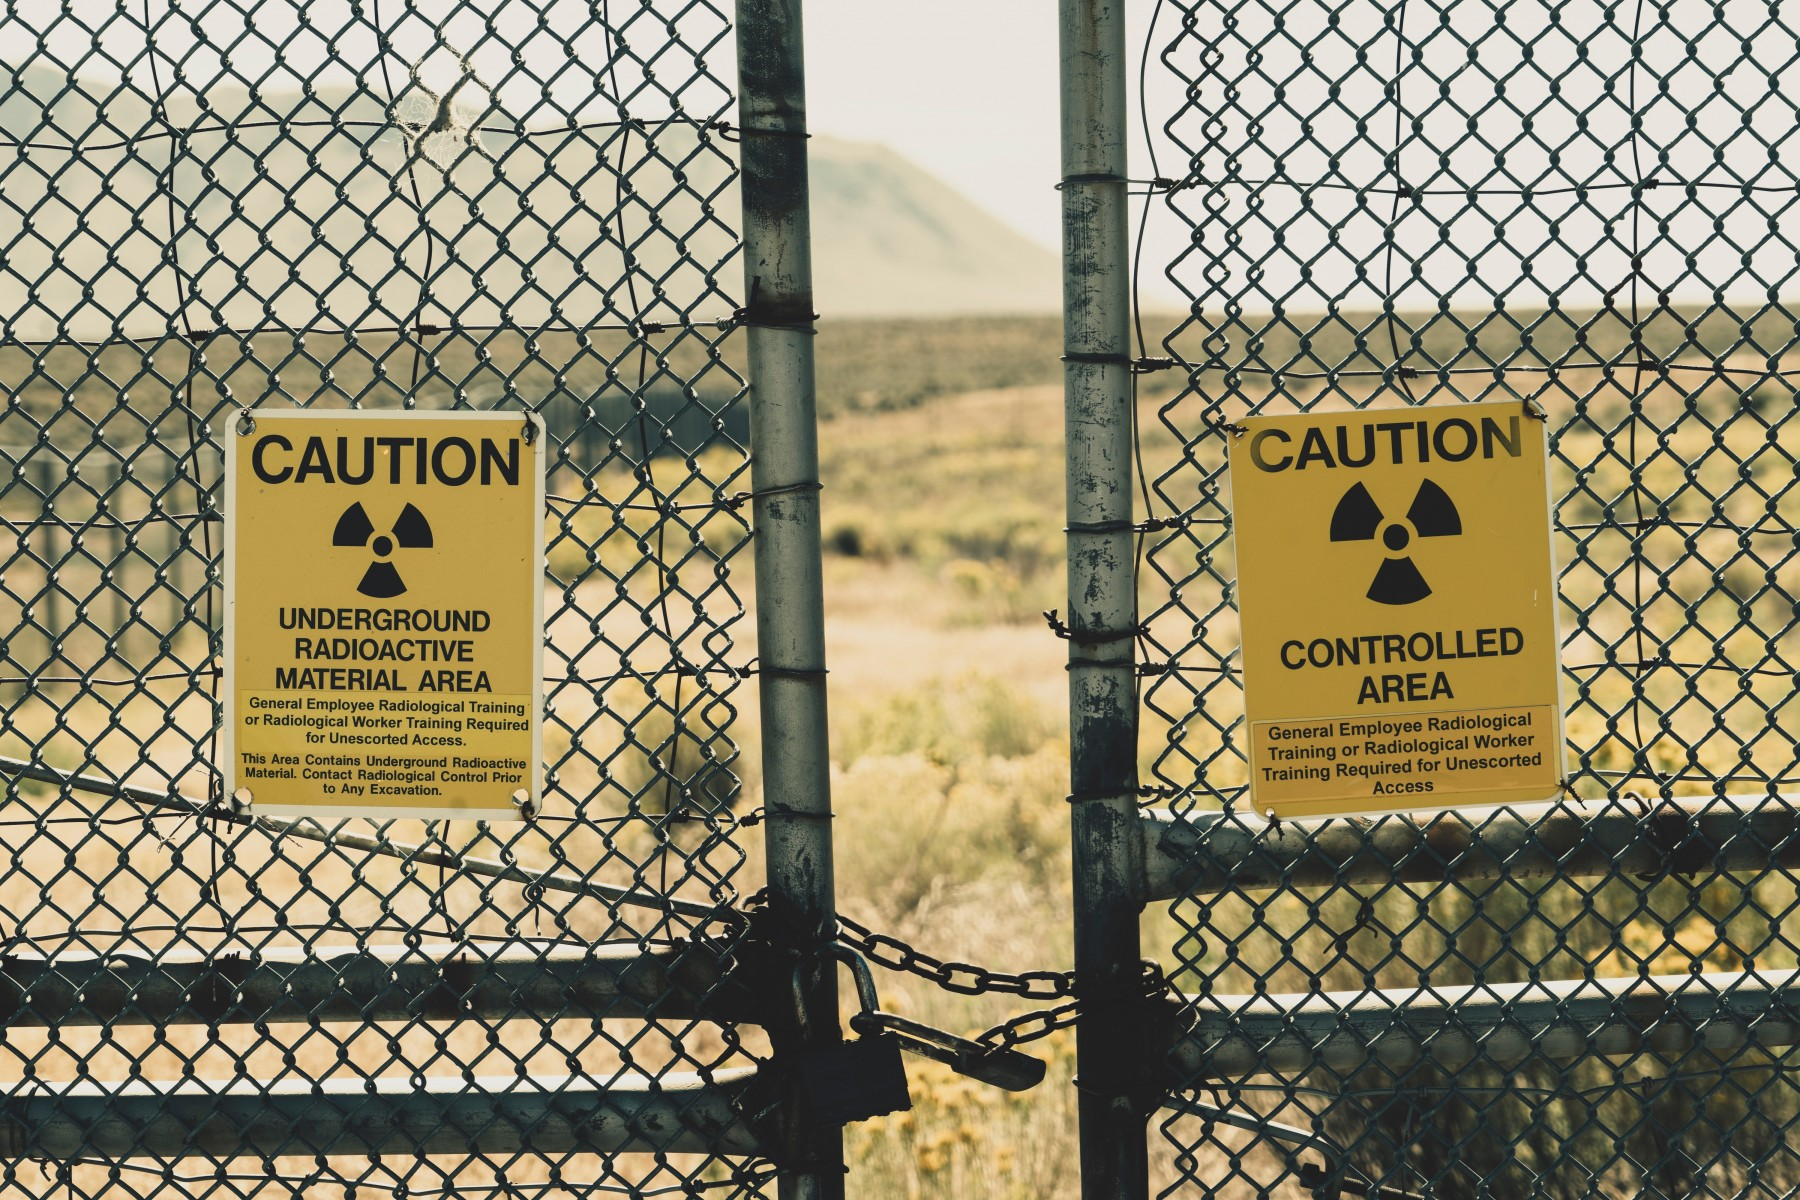 A new study shows that materials planned to store high level nuclear waste underground are likely to corrode each other, causing degradation that could be harmful to people and the surrounding environment.